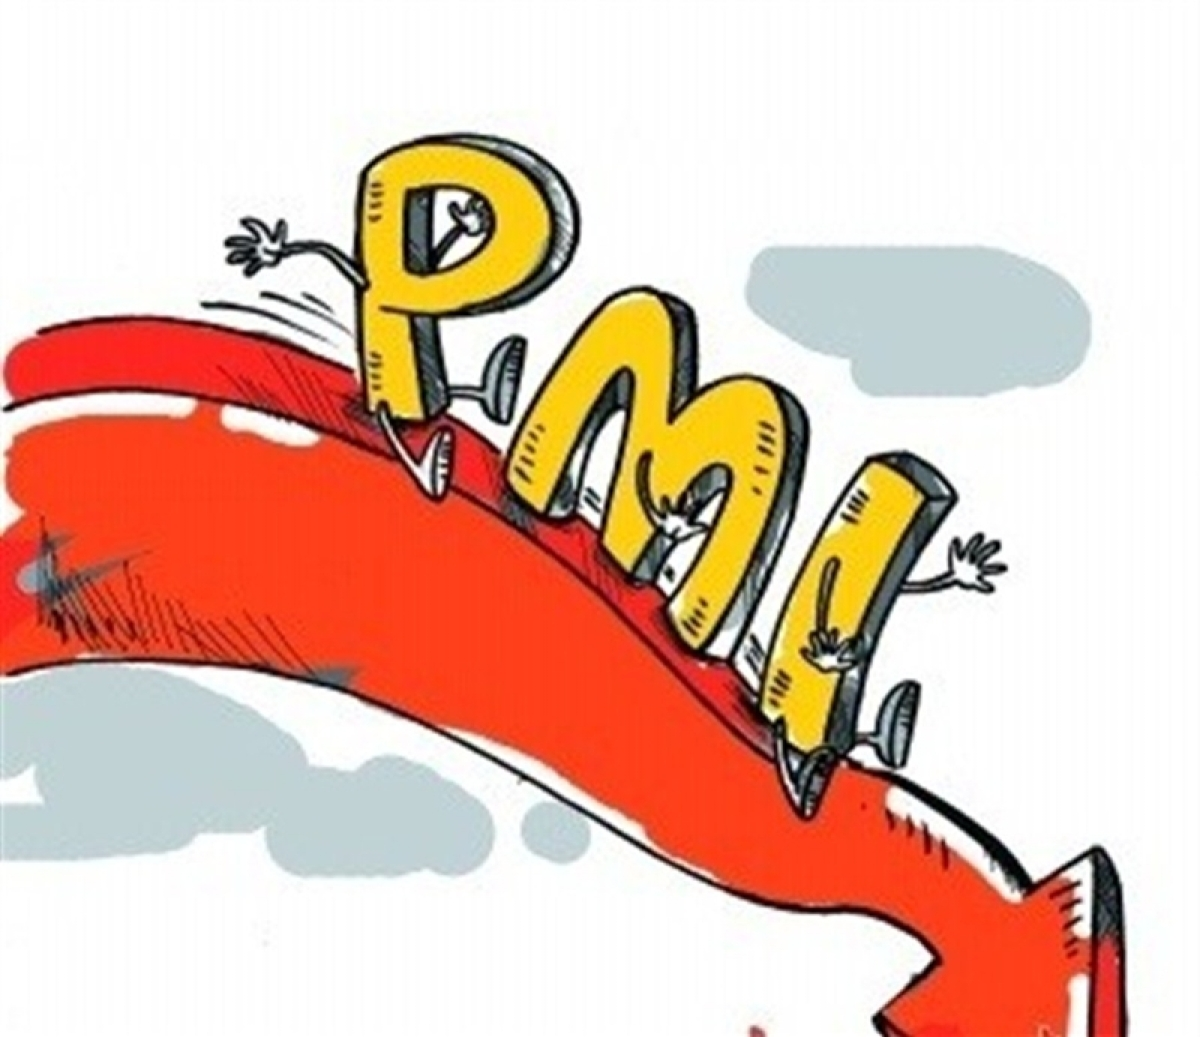 India's manufacturing sector growth slows: PMI